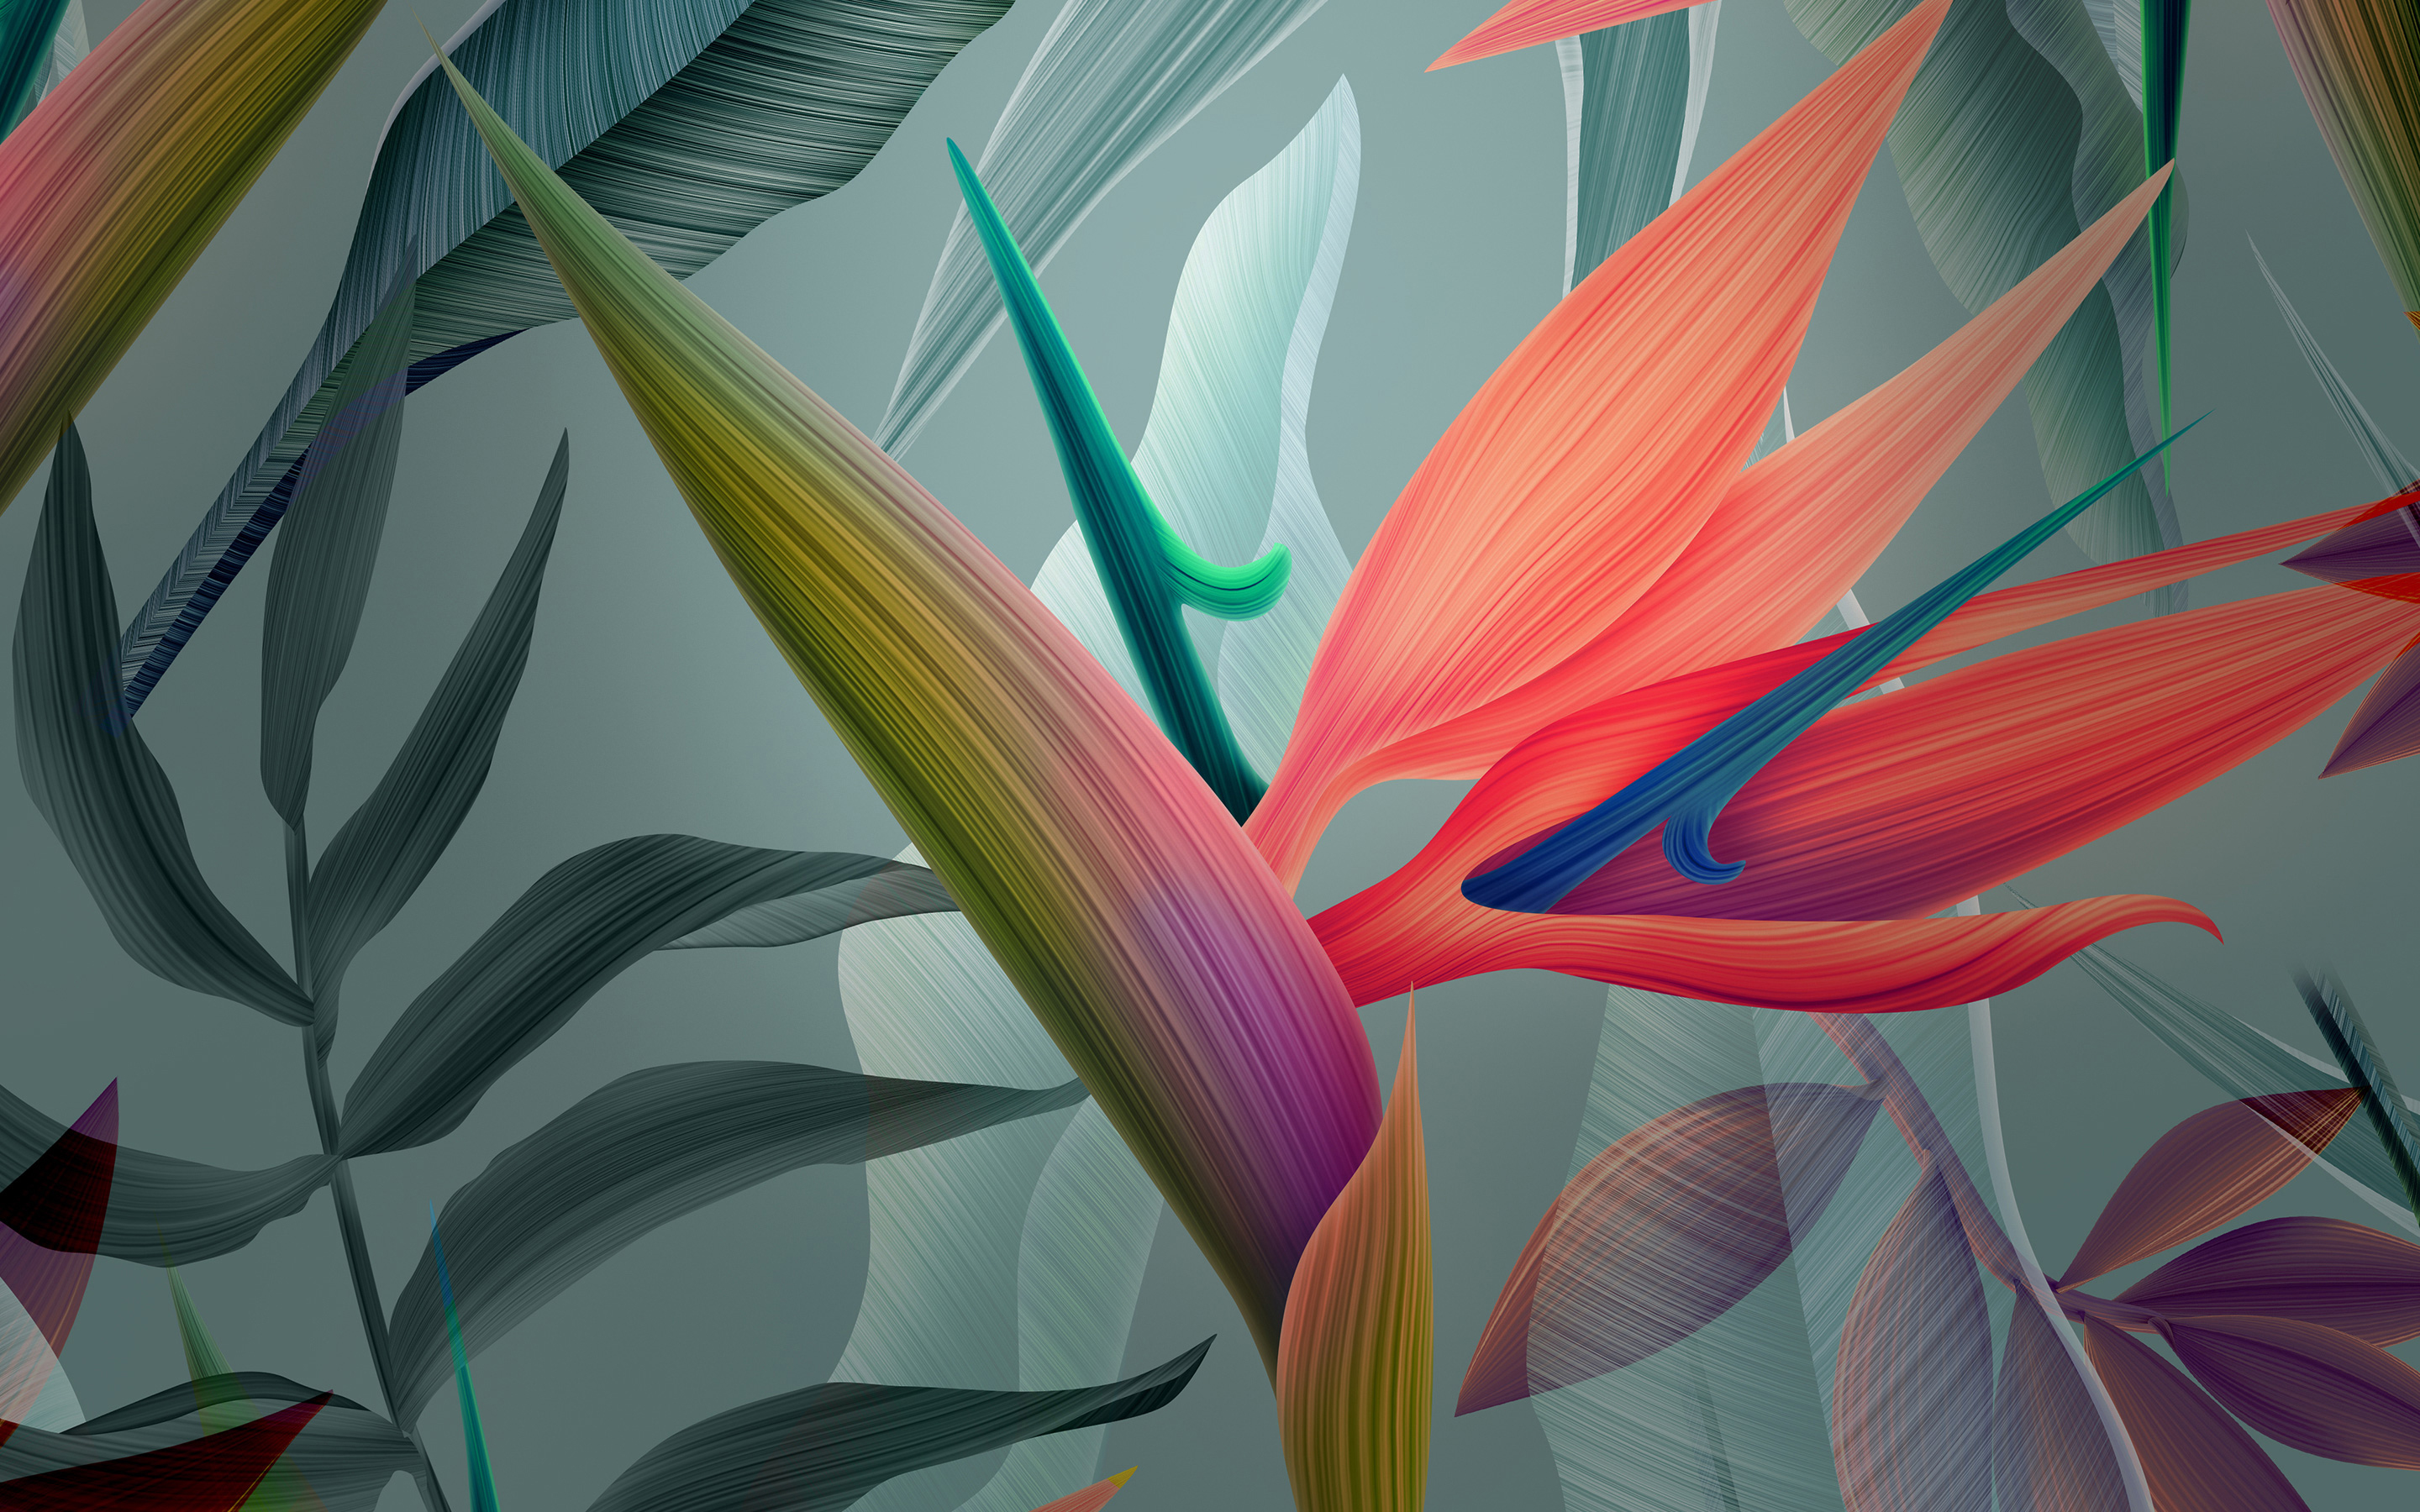 Abstract Flowers Wallpapers Hd Wallpapers